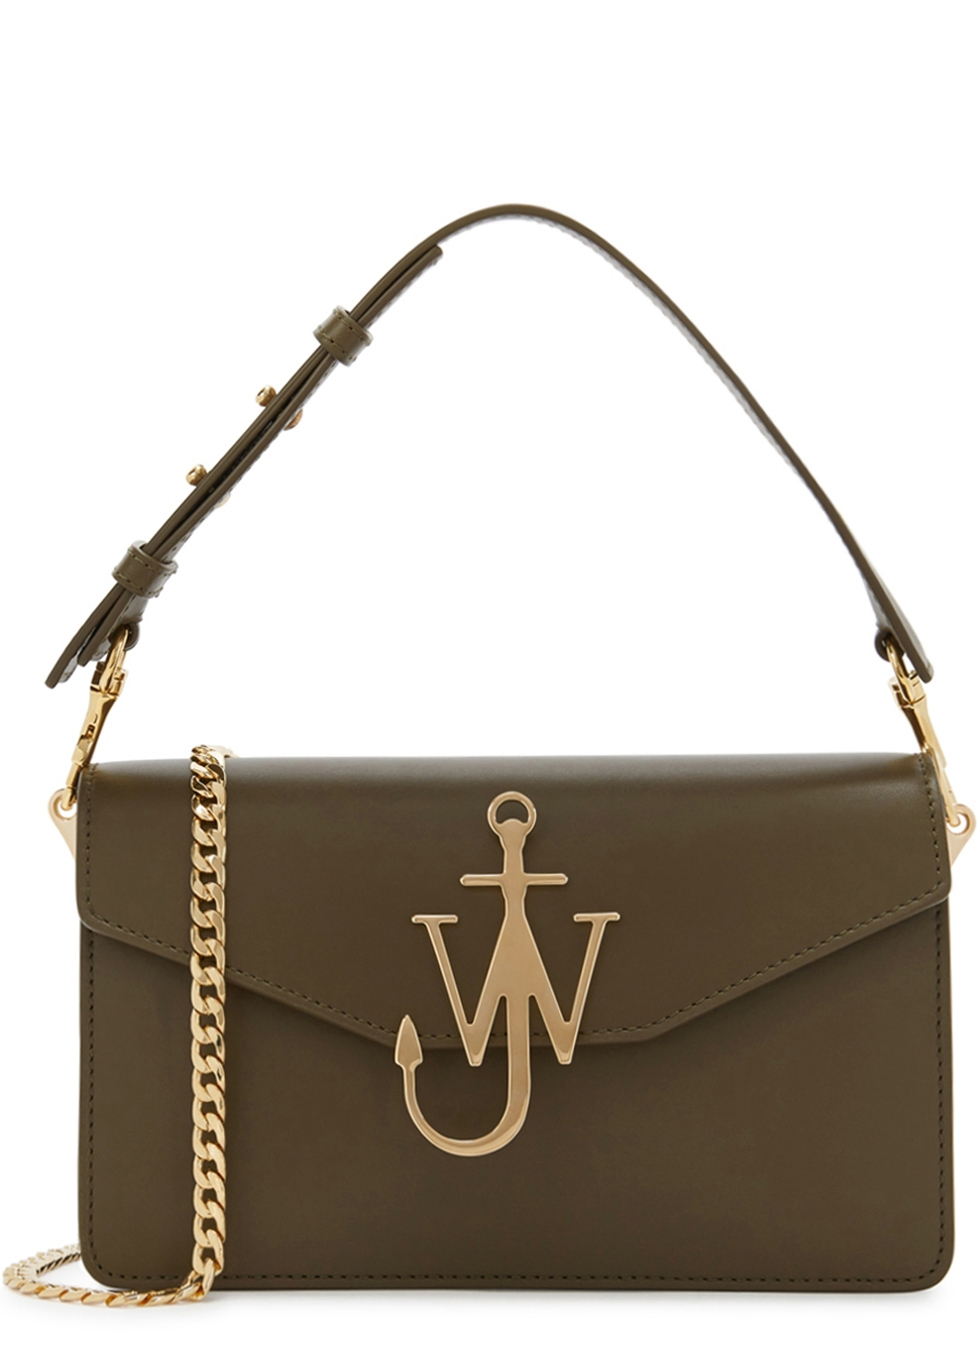 J.W.ANDERSON OLIVE LOGO LEATHER SHOULDER BAG